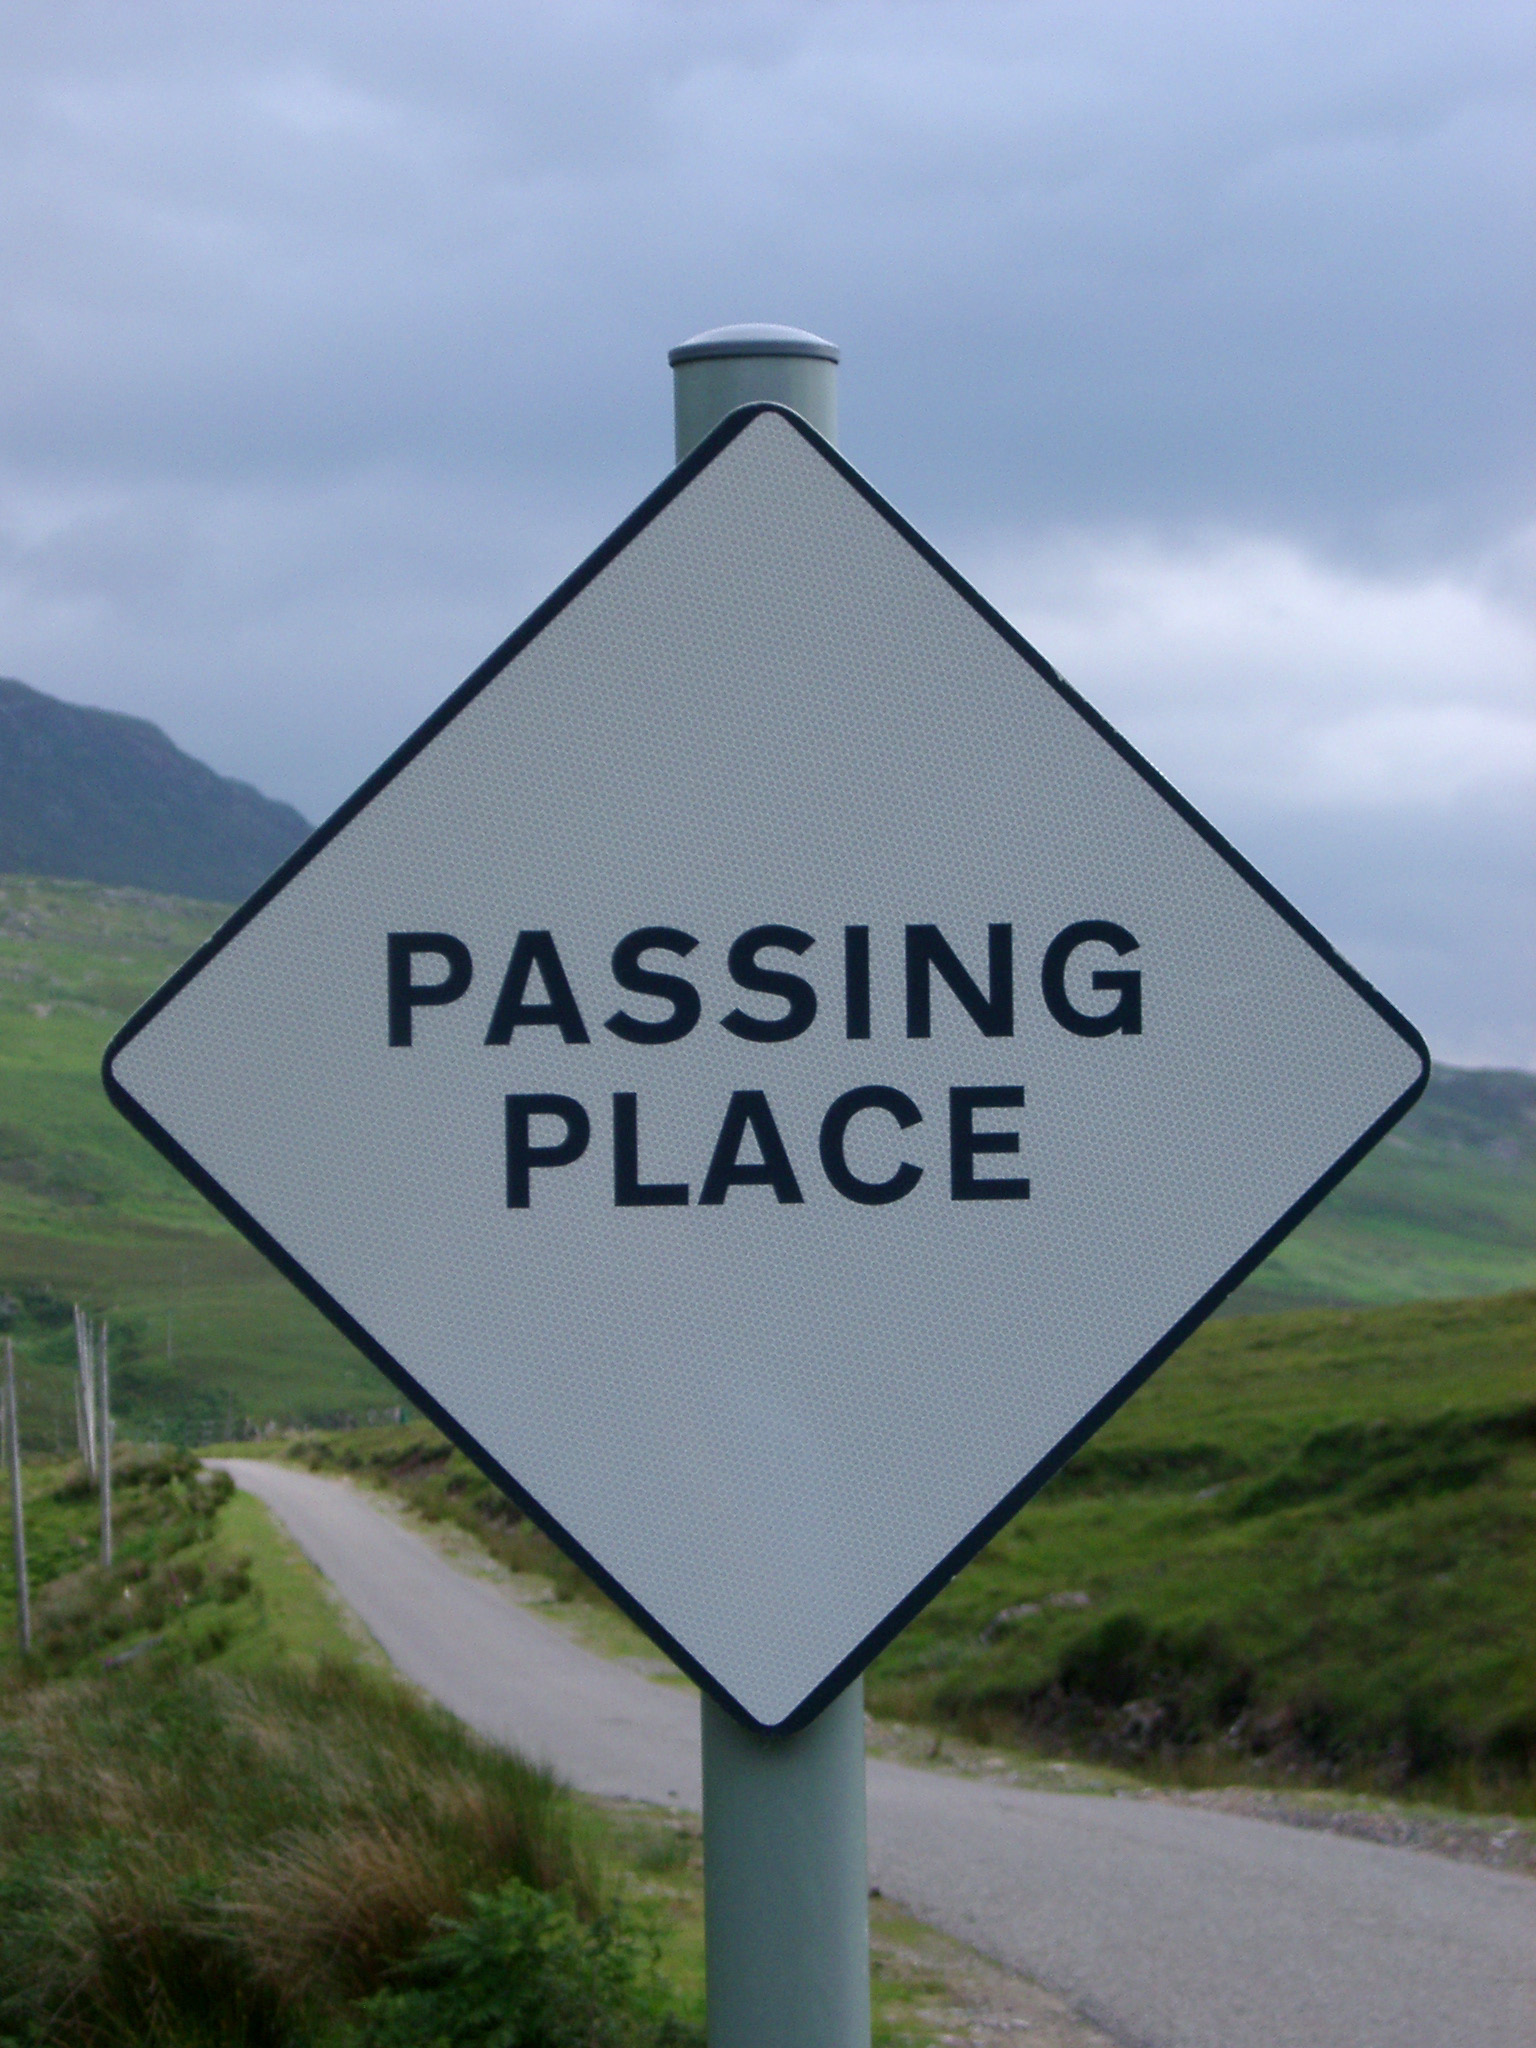 Passing Place roadsign in Scotland on a single lane rural road indicating a safe place for vehicles traveling through the Highlands to pass